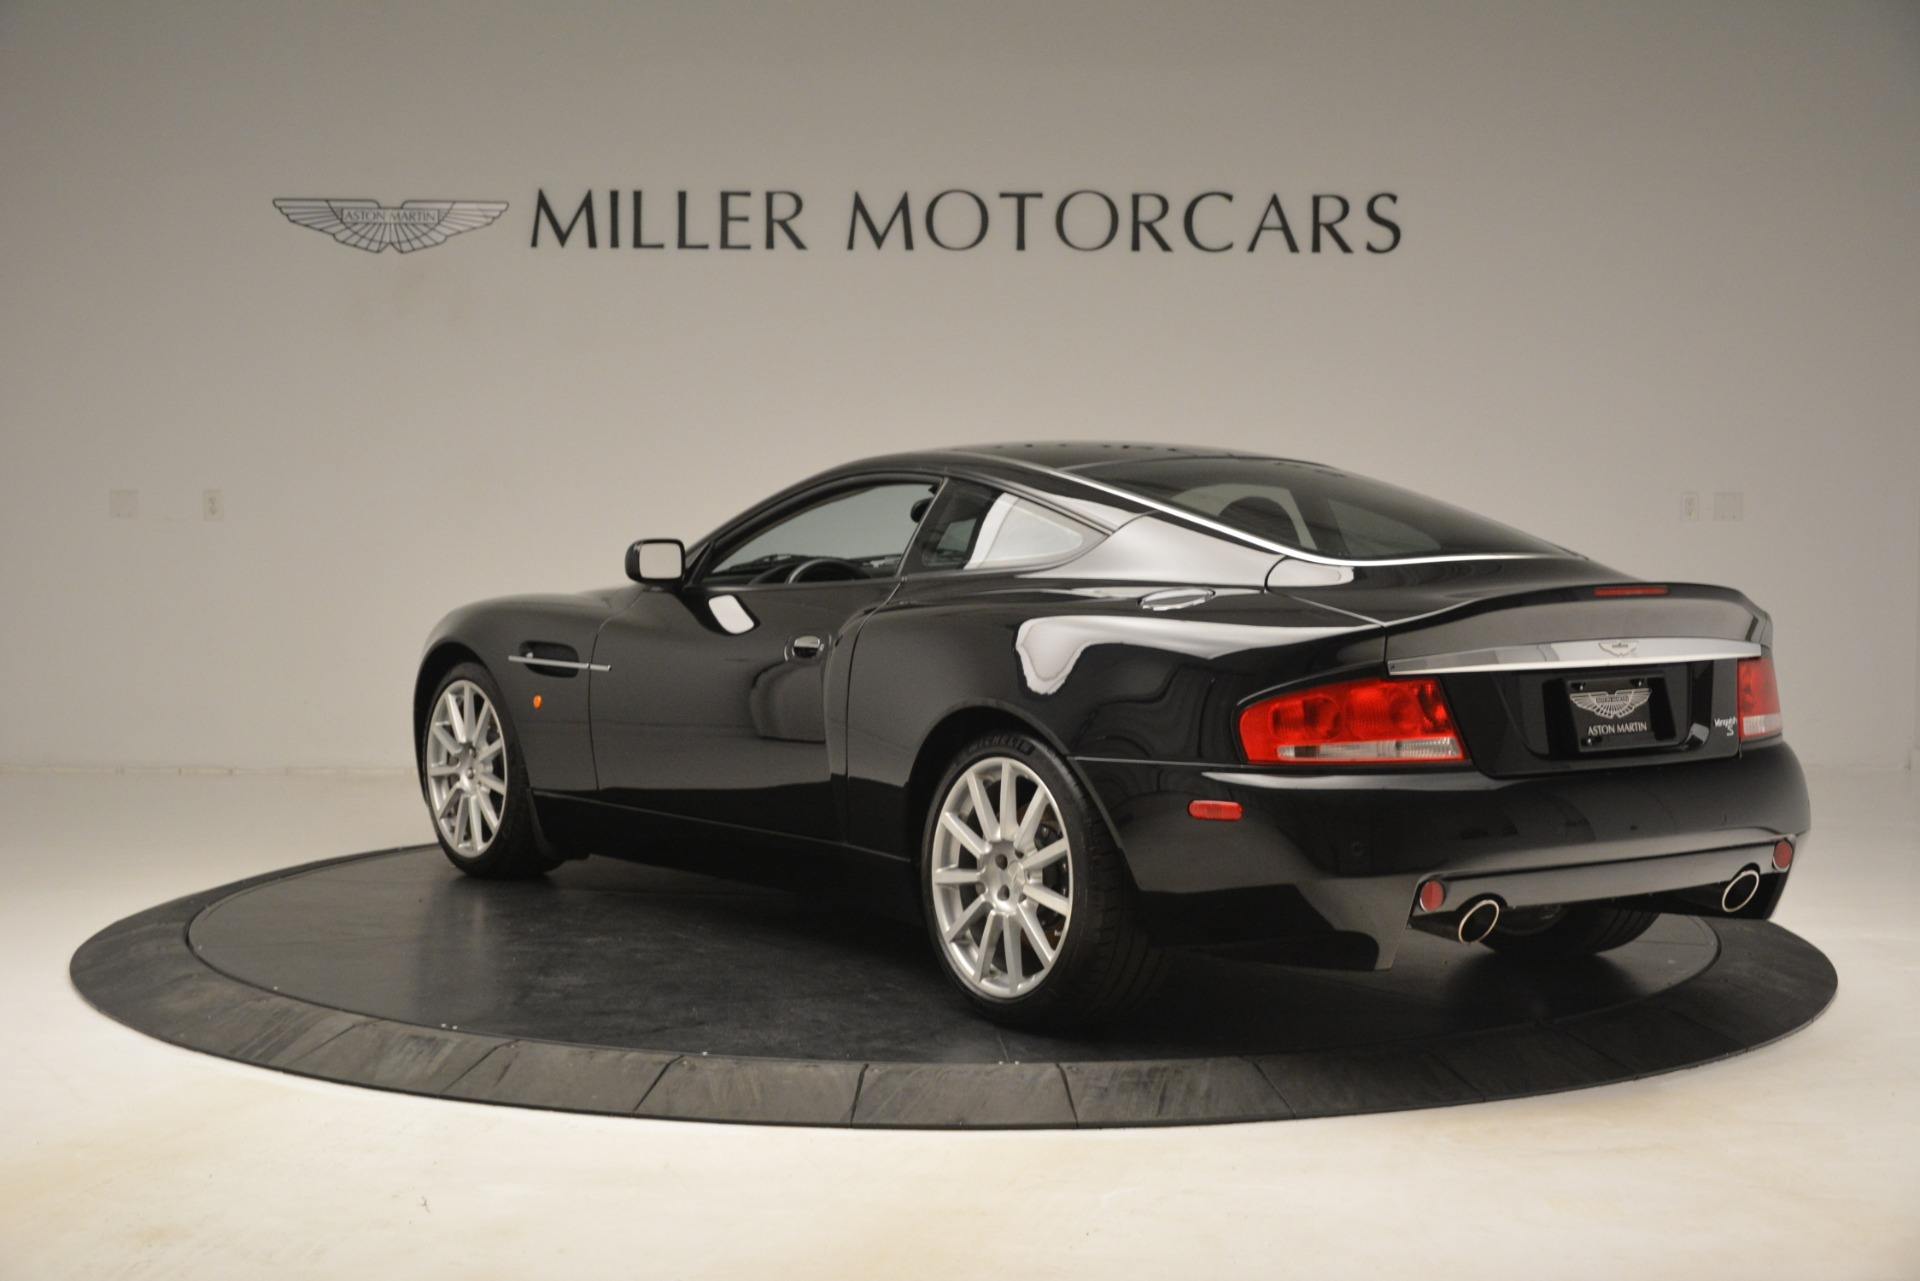 Used 2005 Aston Martin V12 Vanquish S For Sale In Westport, CT 3218_p5